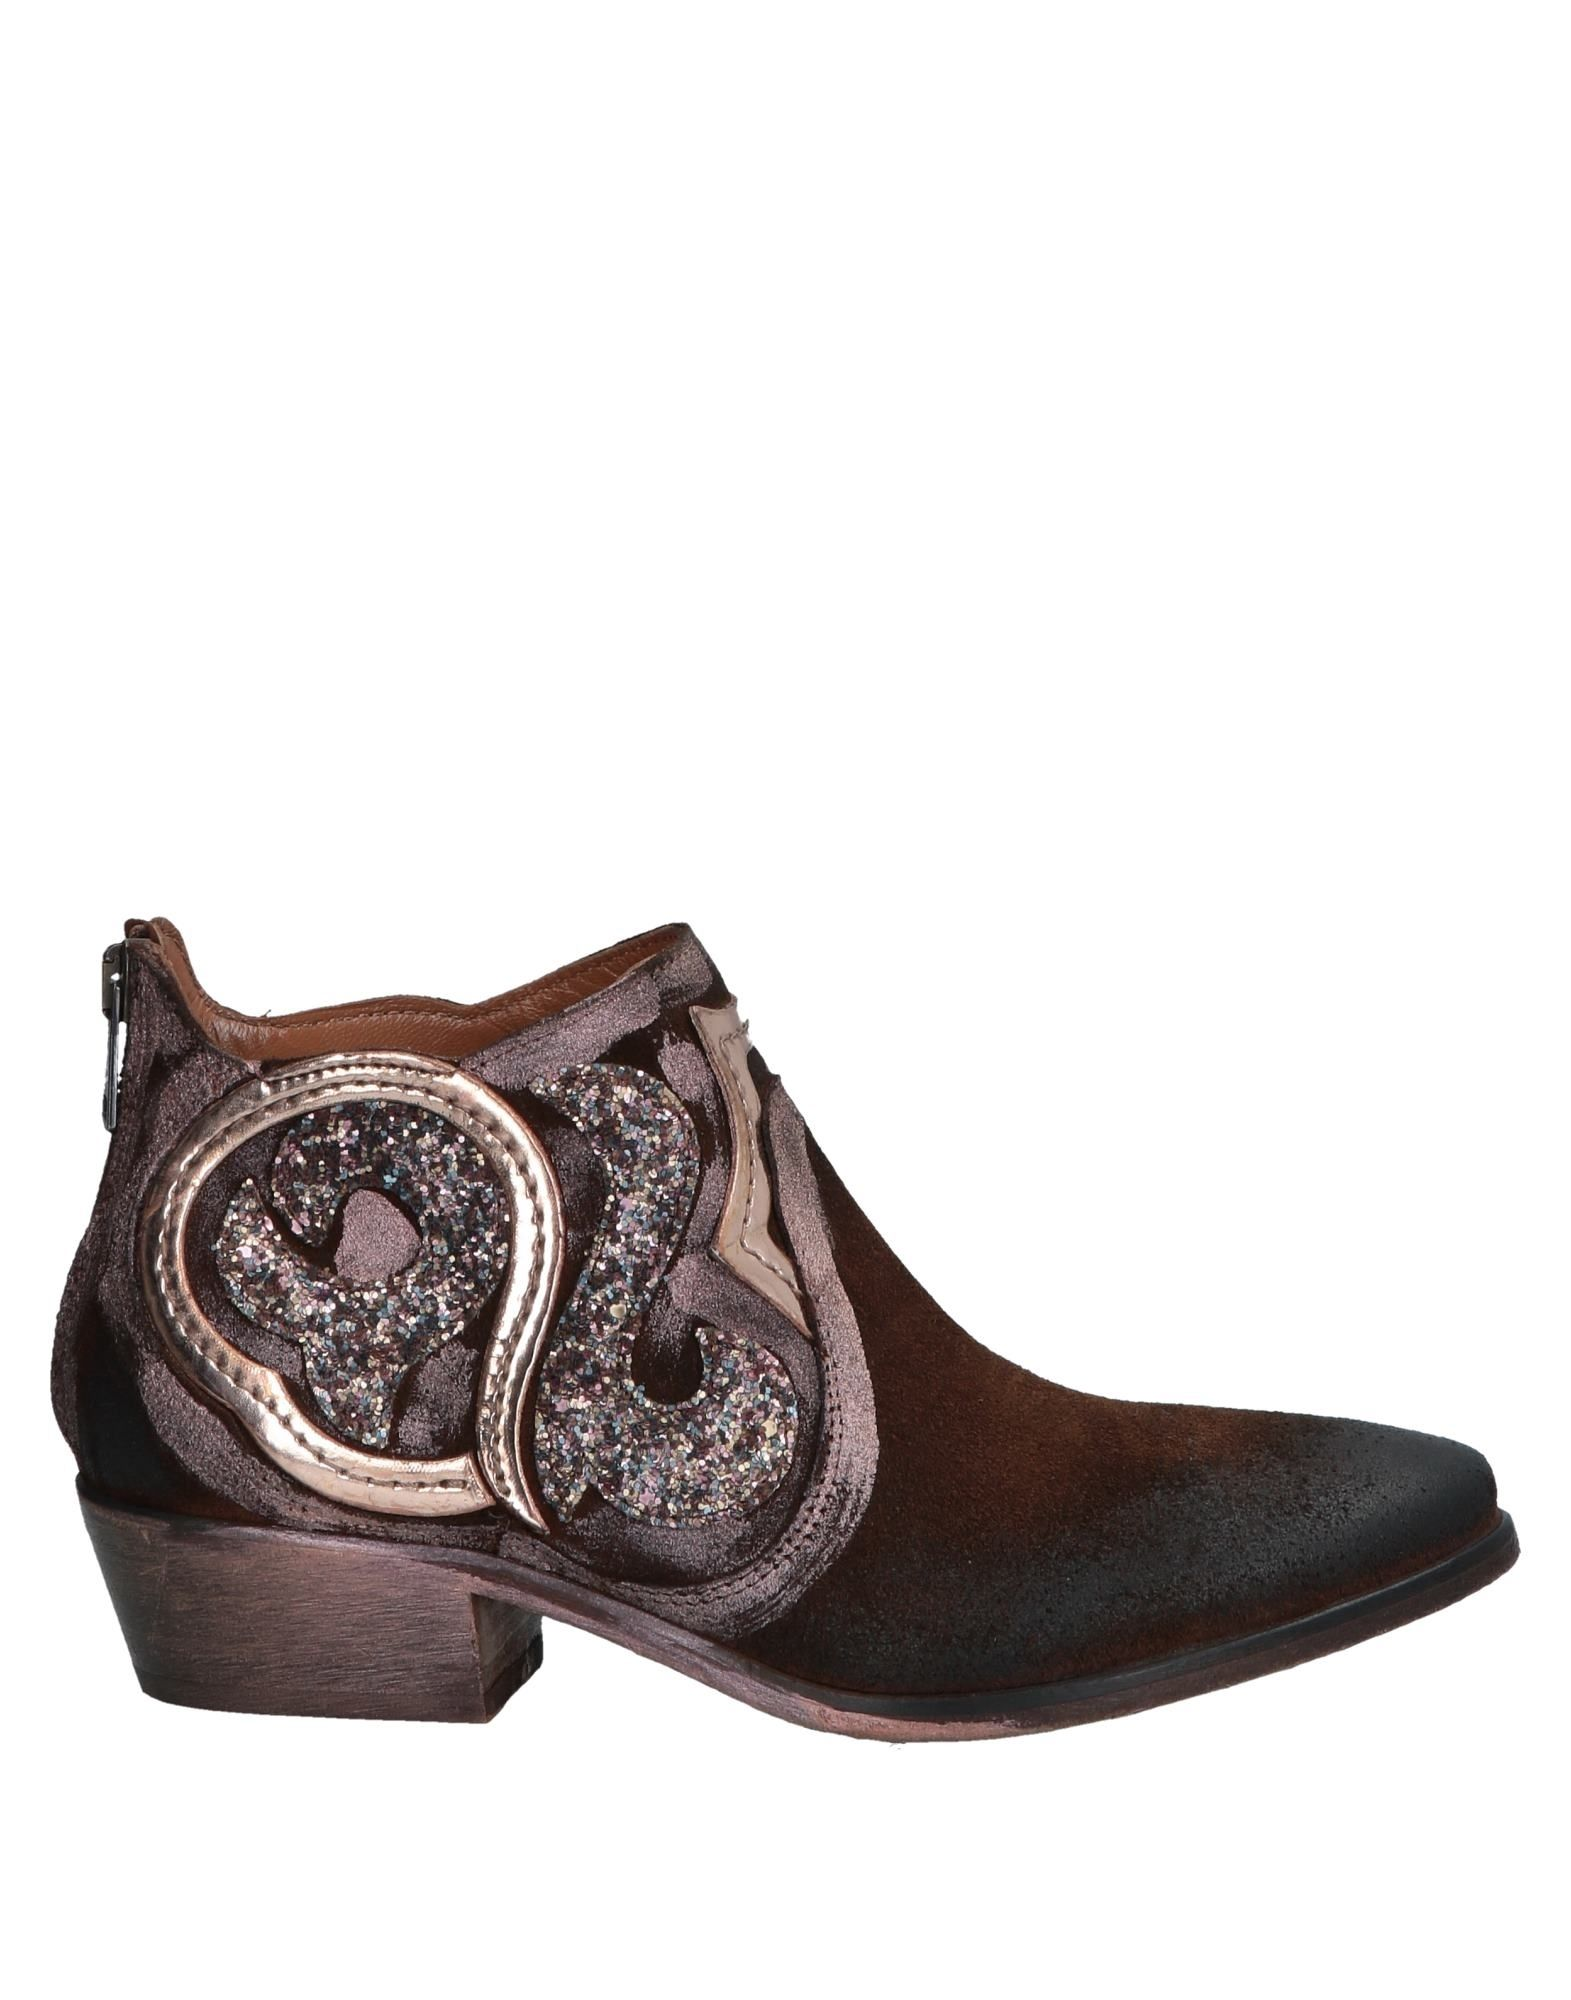 Garrice Ankle Boot Boots - Women Garrice Ankle Boots Boot online on  Australia - 11560278IA 1f95a3